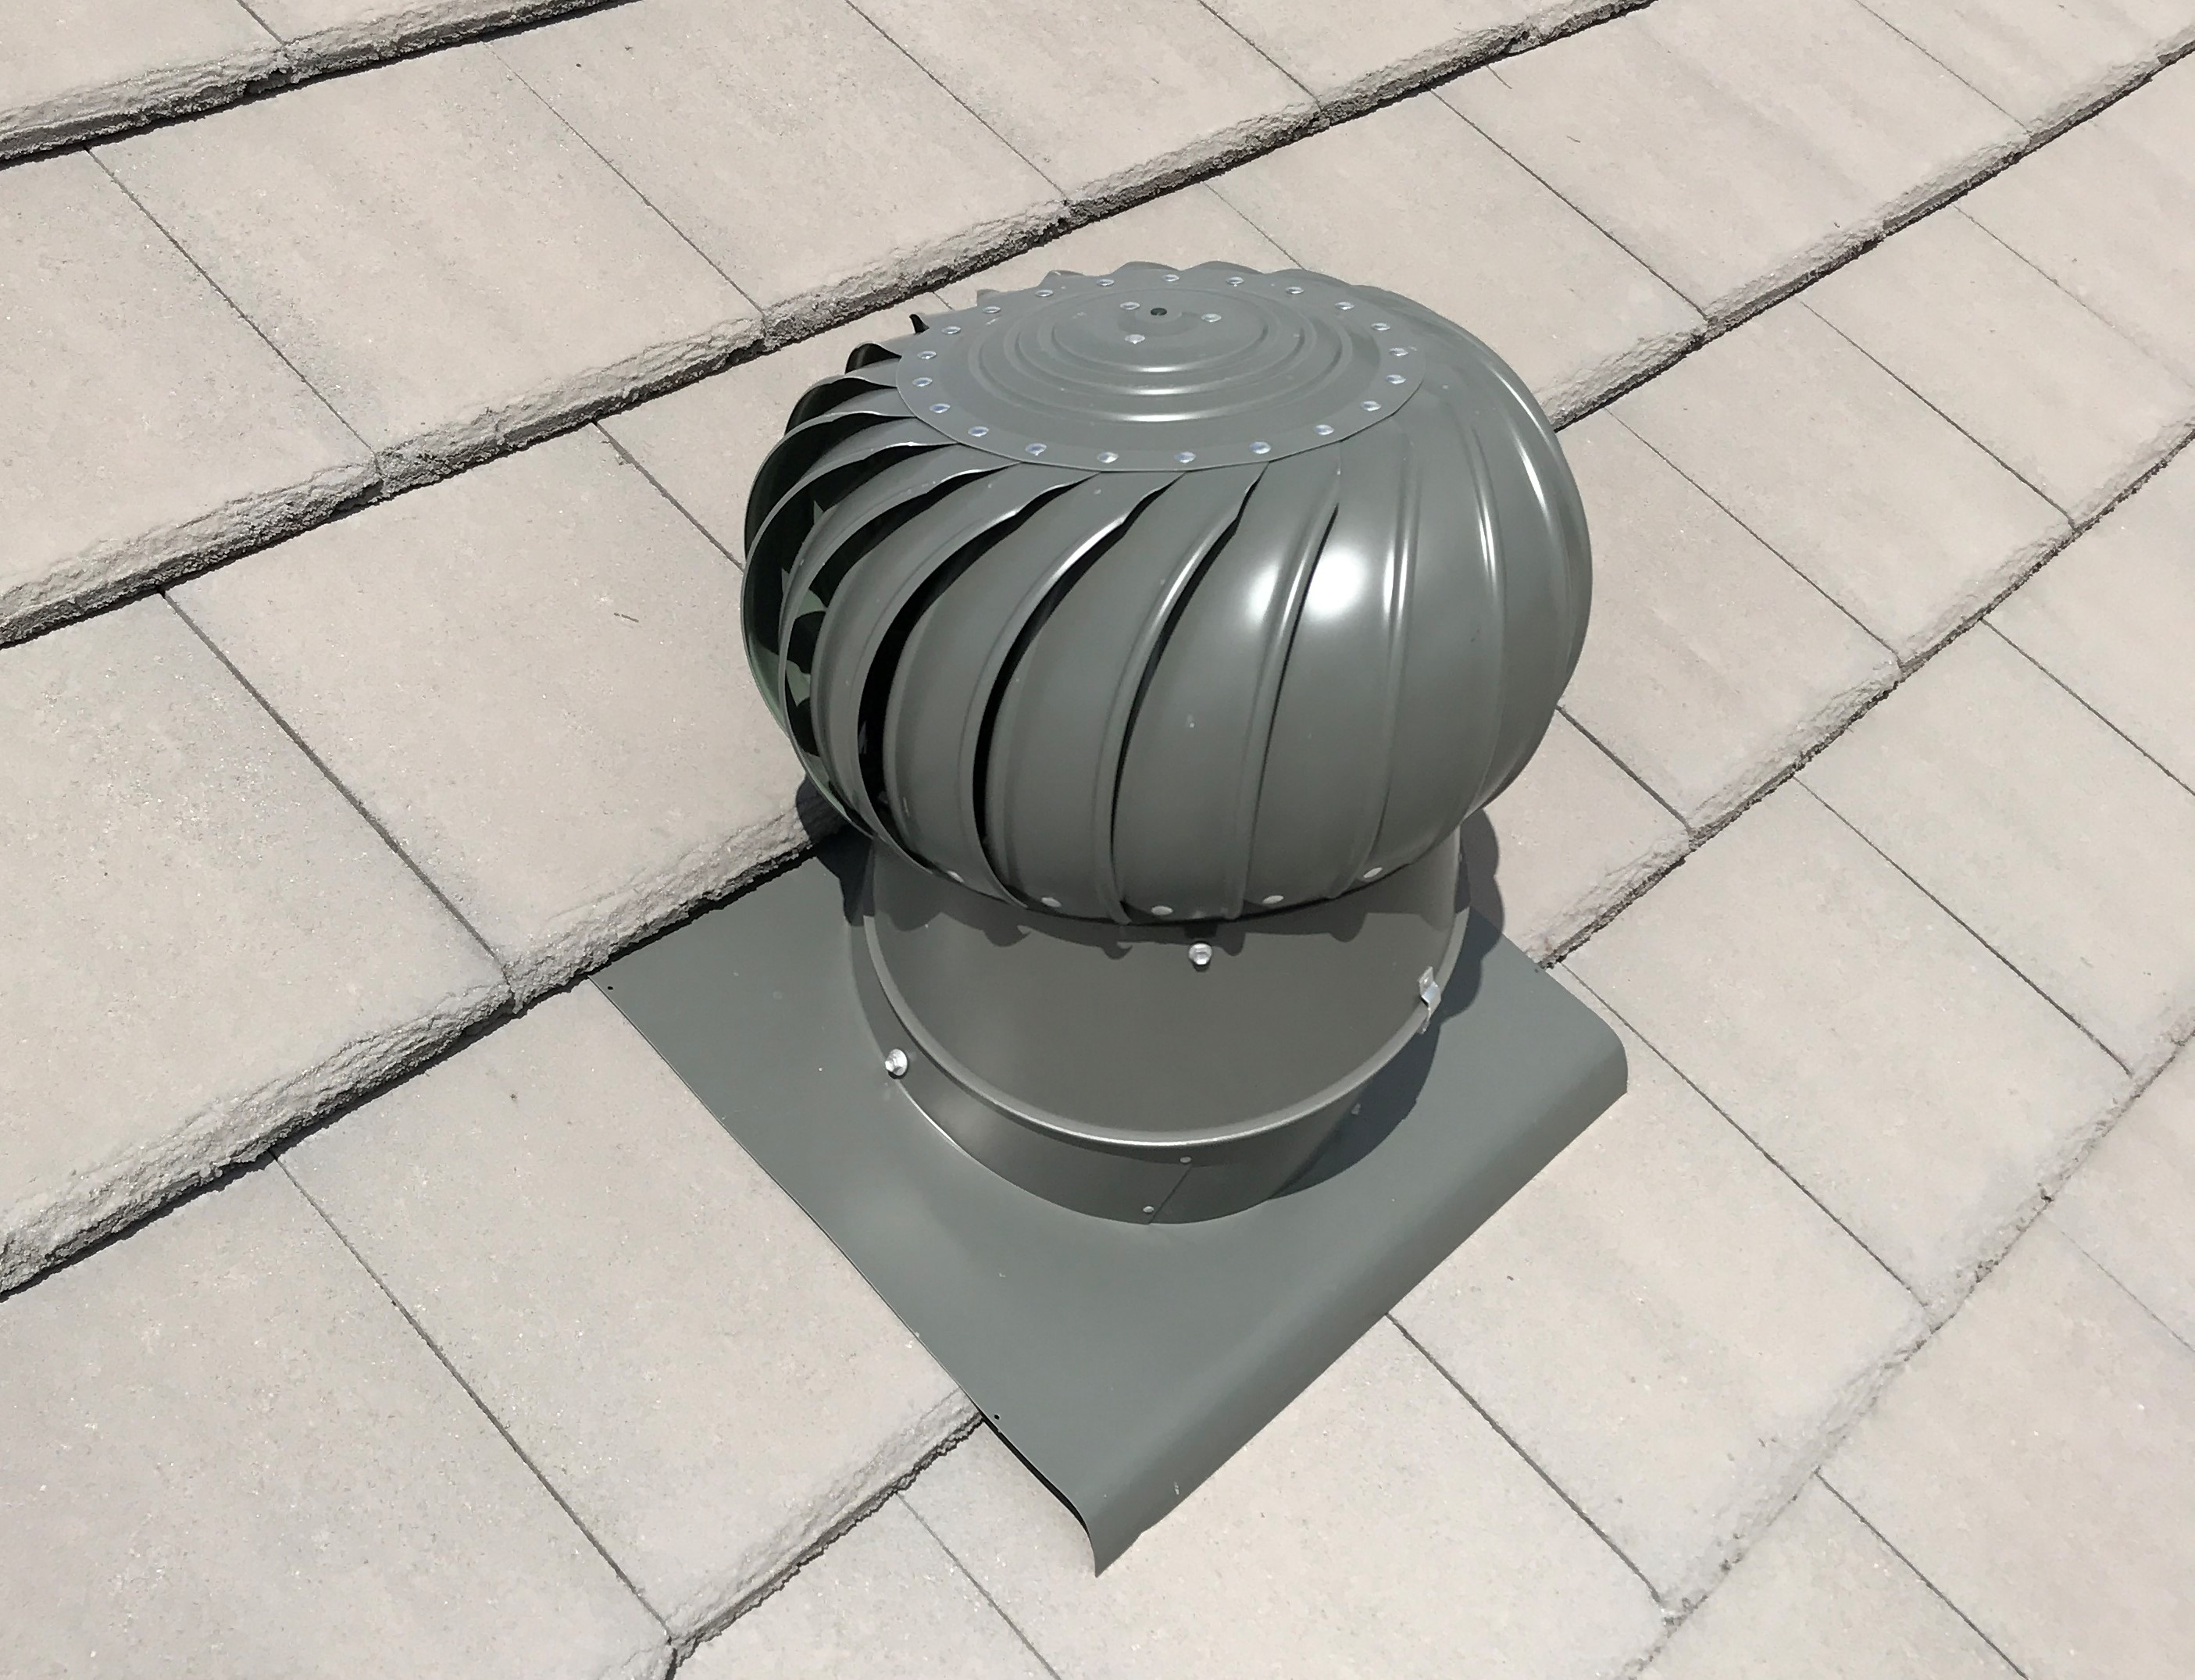 Whirlybird whirly bird wa whirlybirds roofing vents for Cupola ventilation